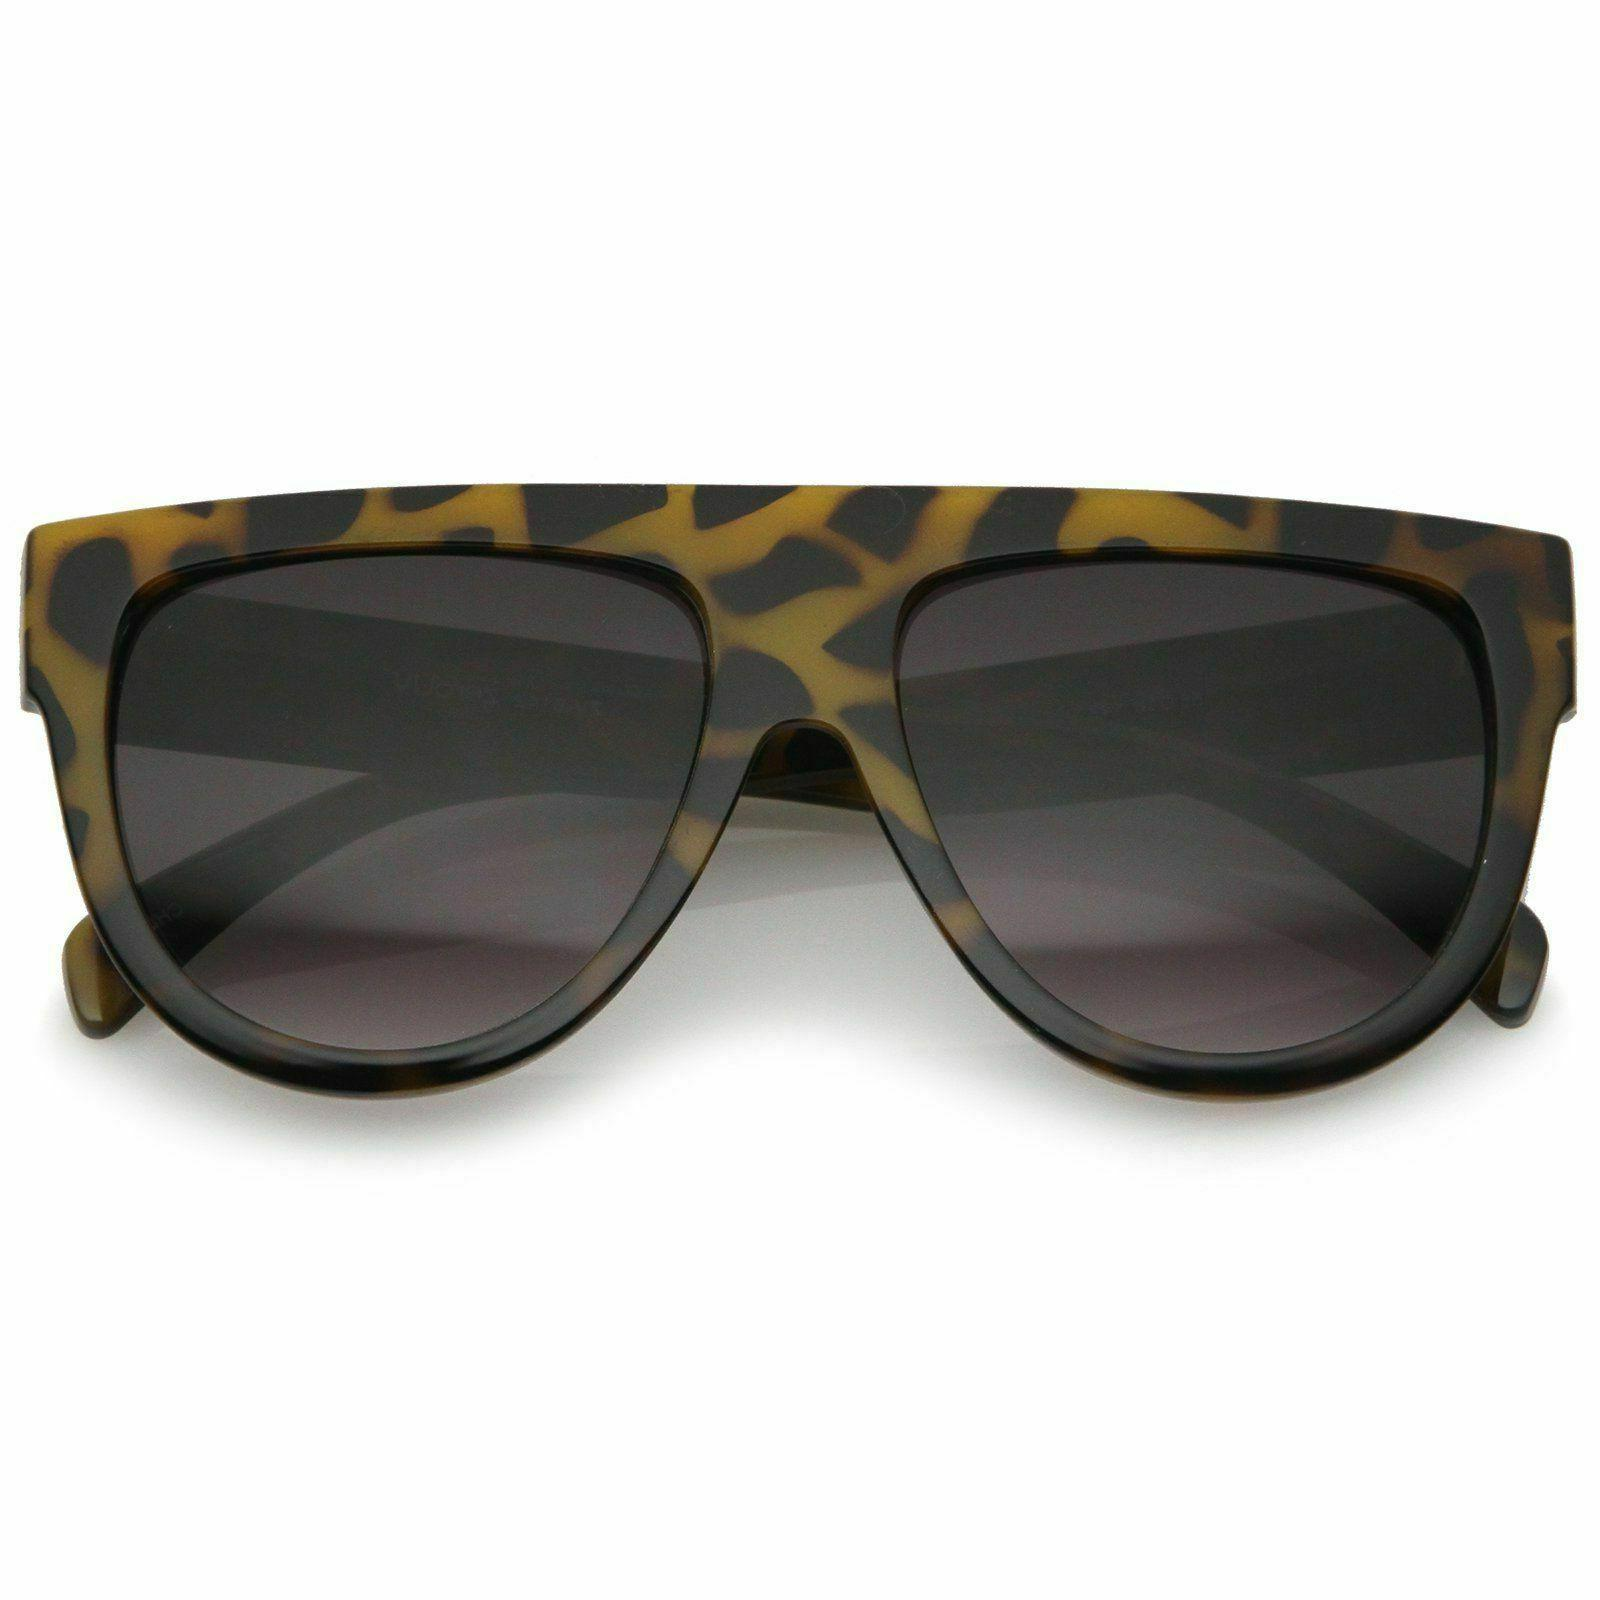 zeroUV Large Oversize Temple Flat Aviator Sunglasses, Yellow Tortoise